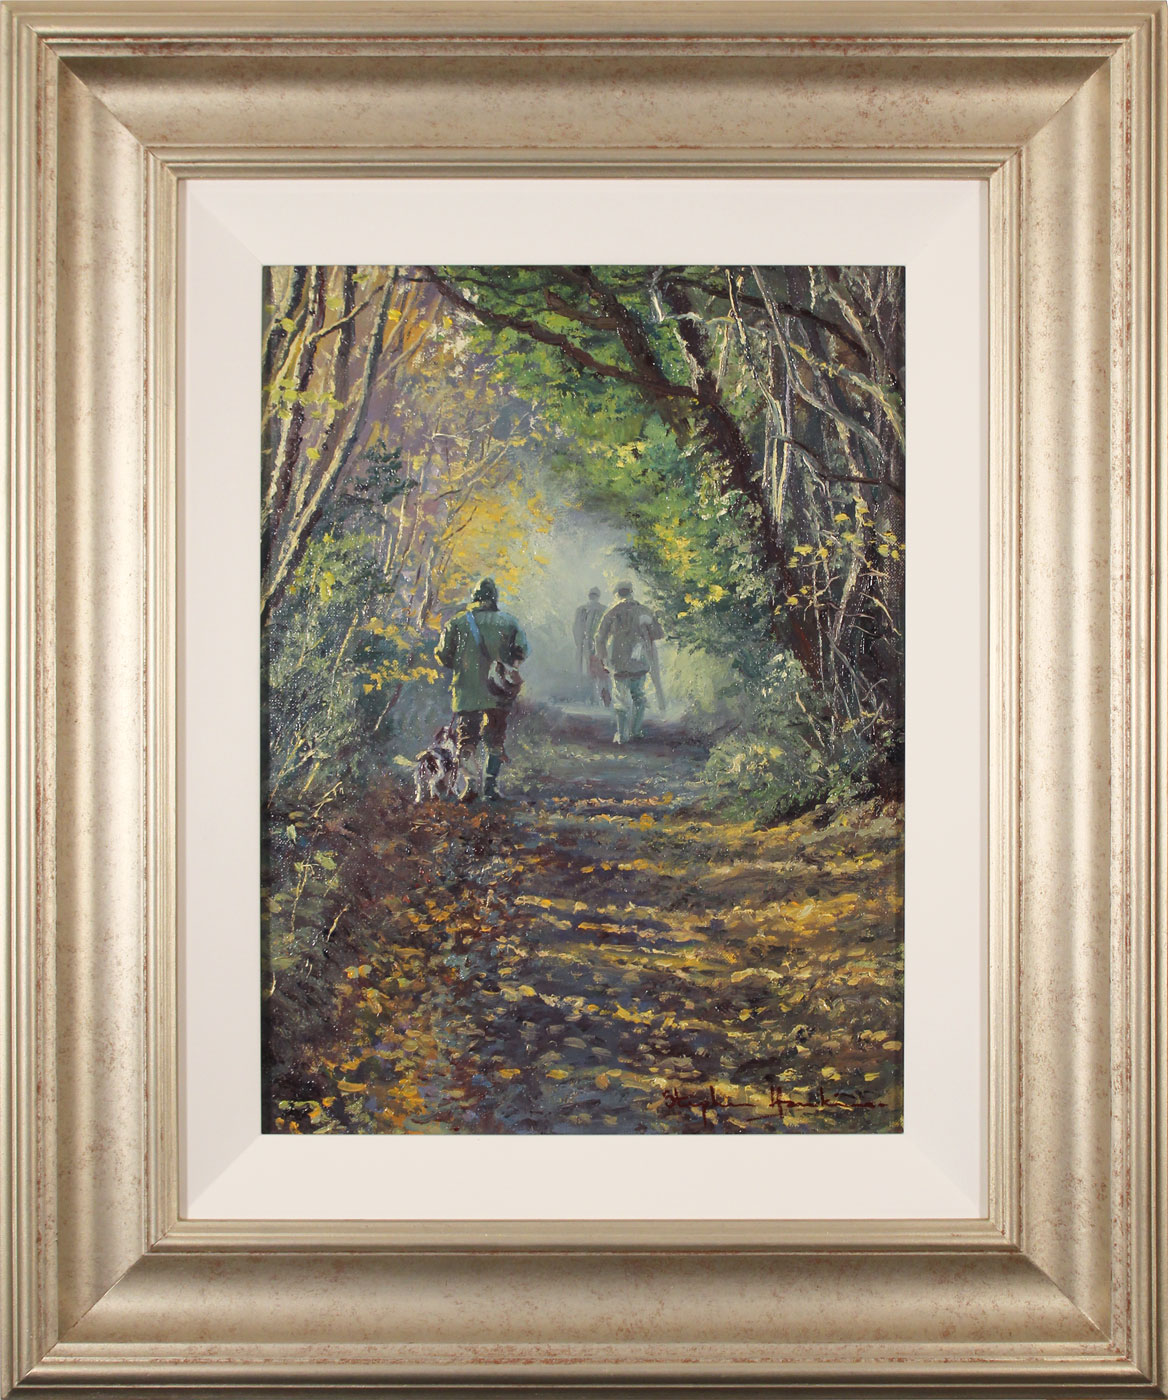 Stephen Hawkins, Original oil painting on canvas, Woodland Way Click to enlarge